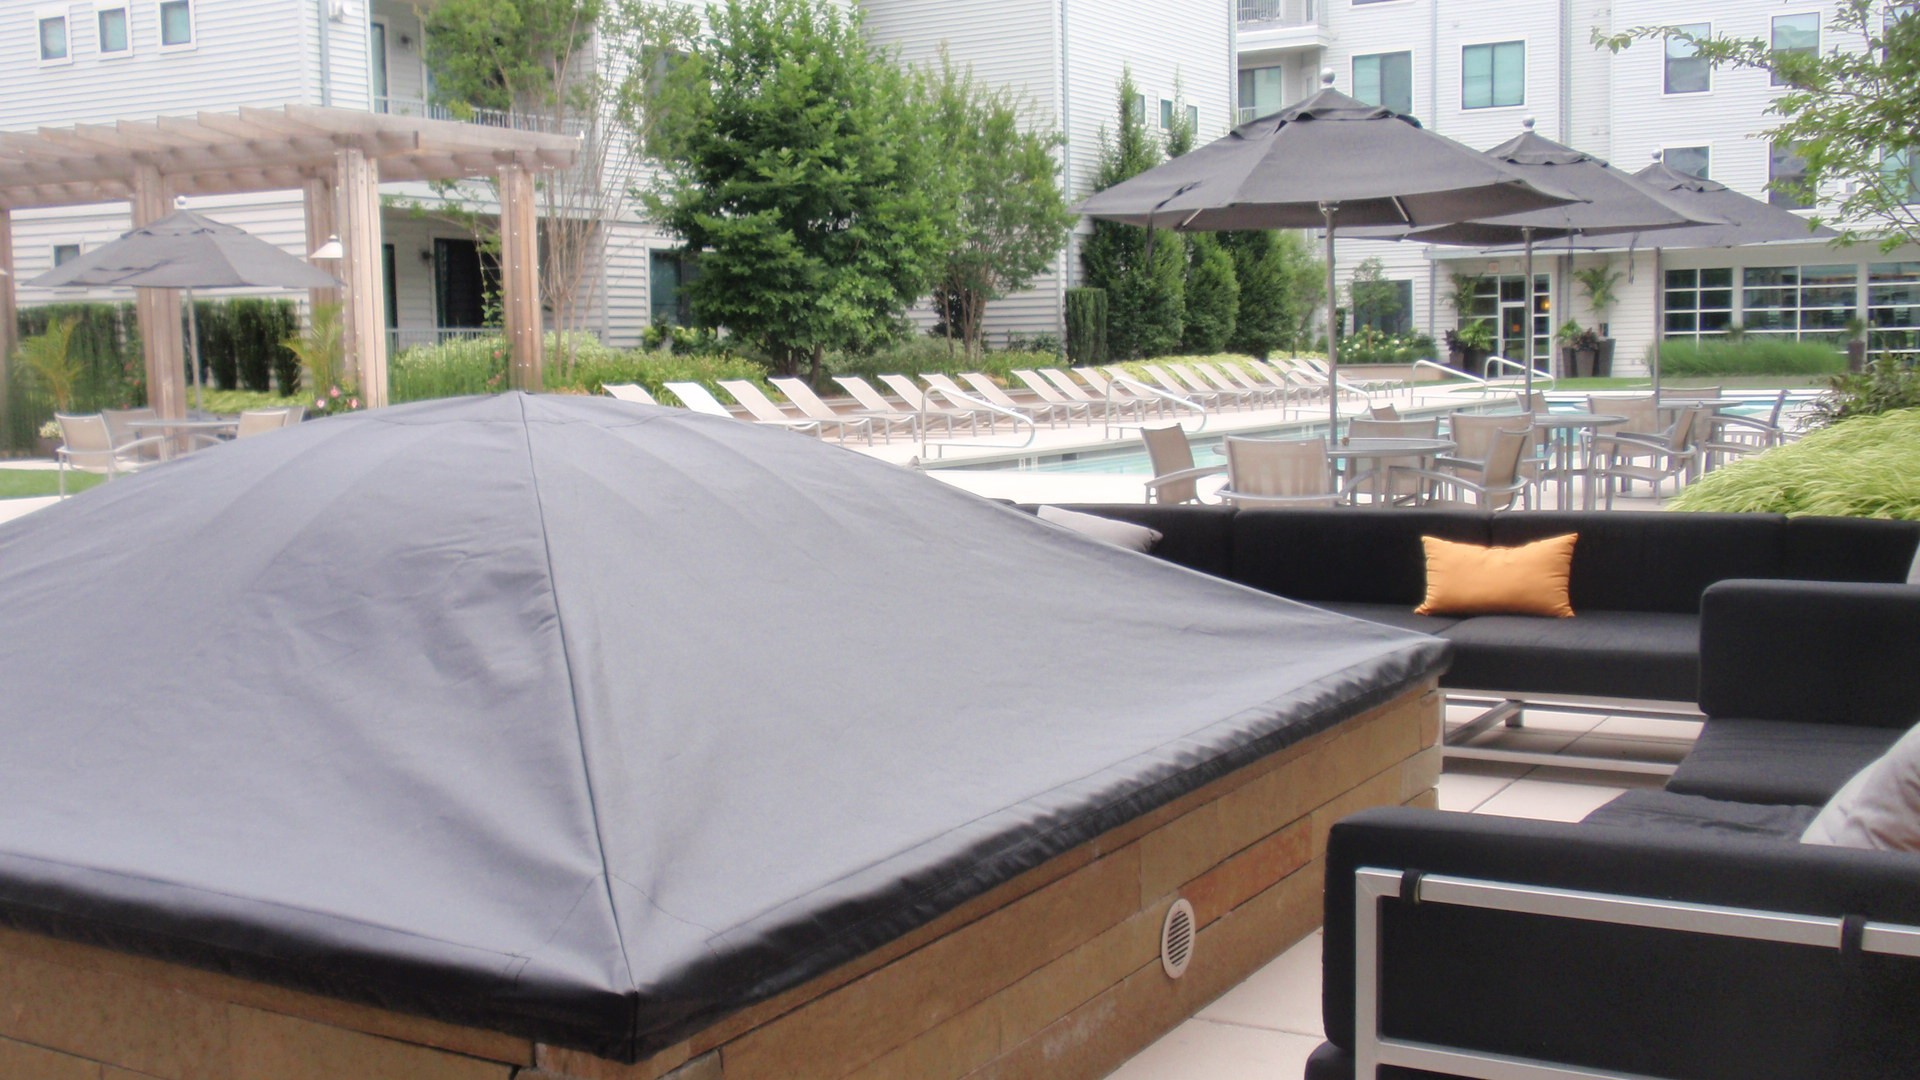 Fire Pit Covers built custom to fit various sizes of outdoor firepits & fireplaces.  A custom cover will help protect your outdoor fire pit from nature